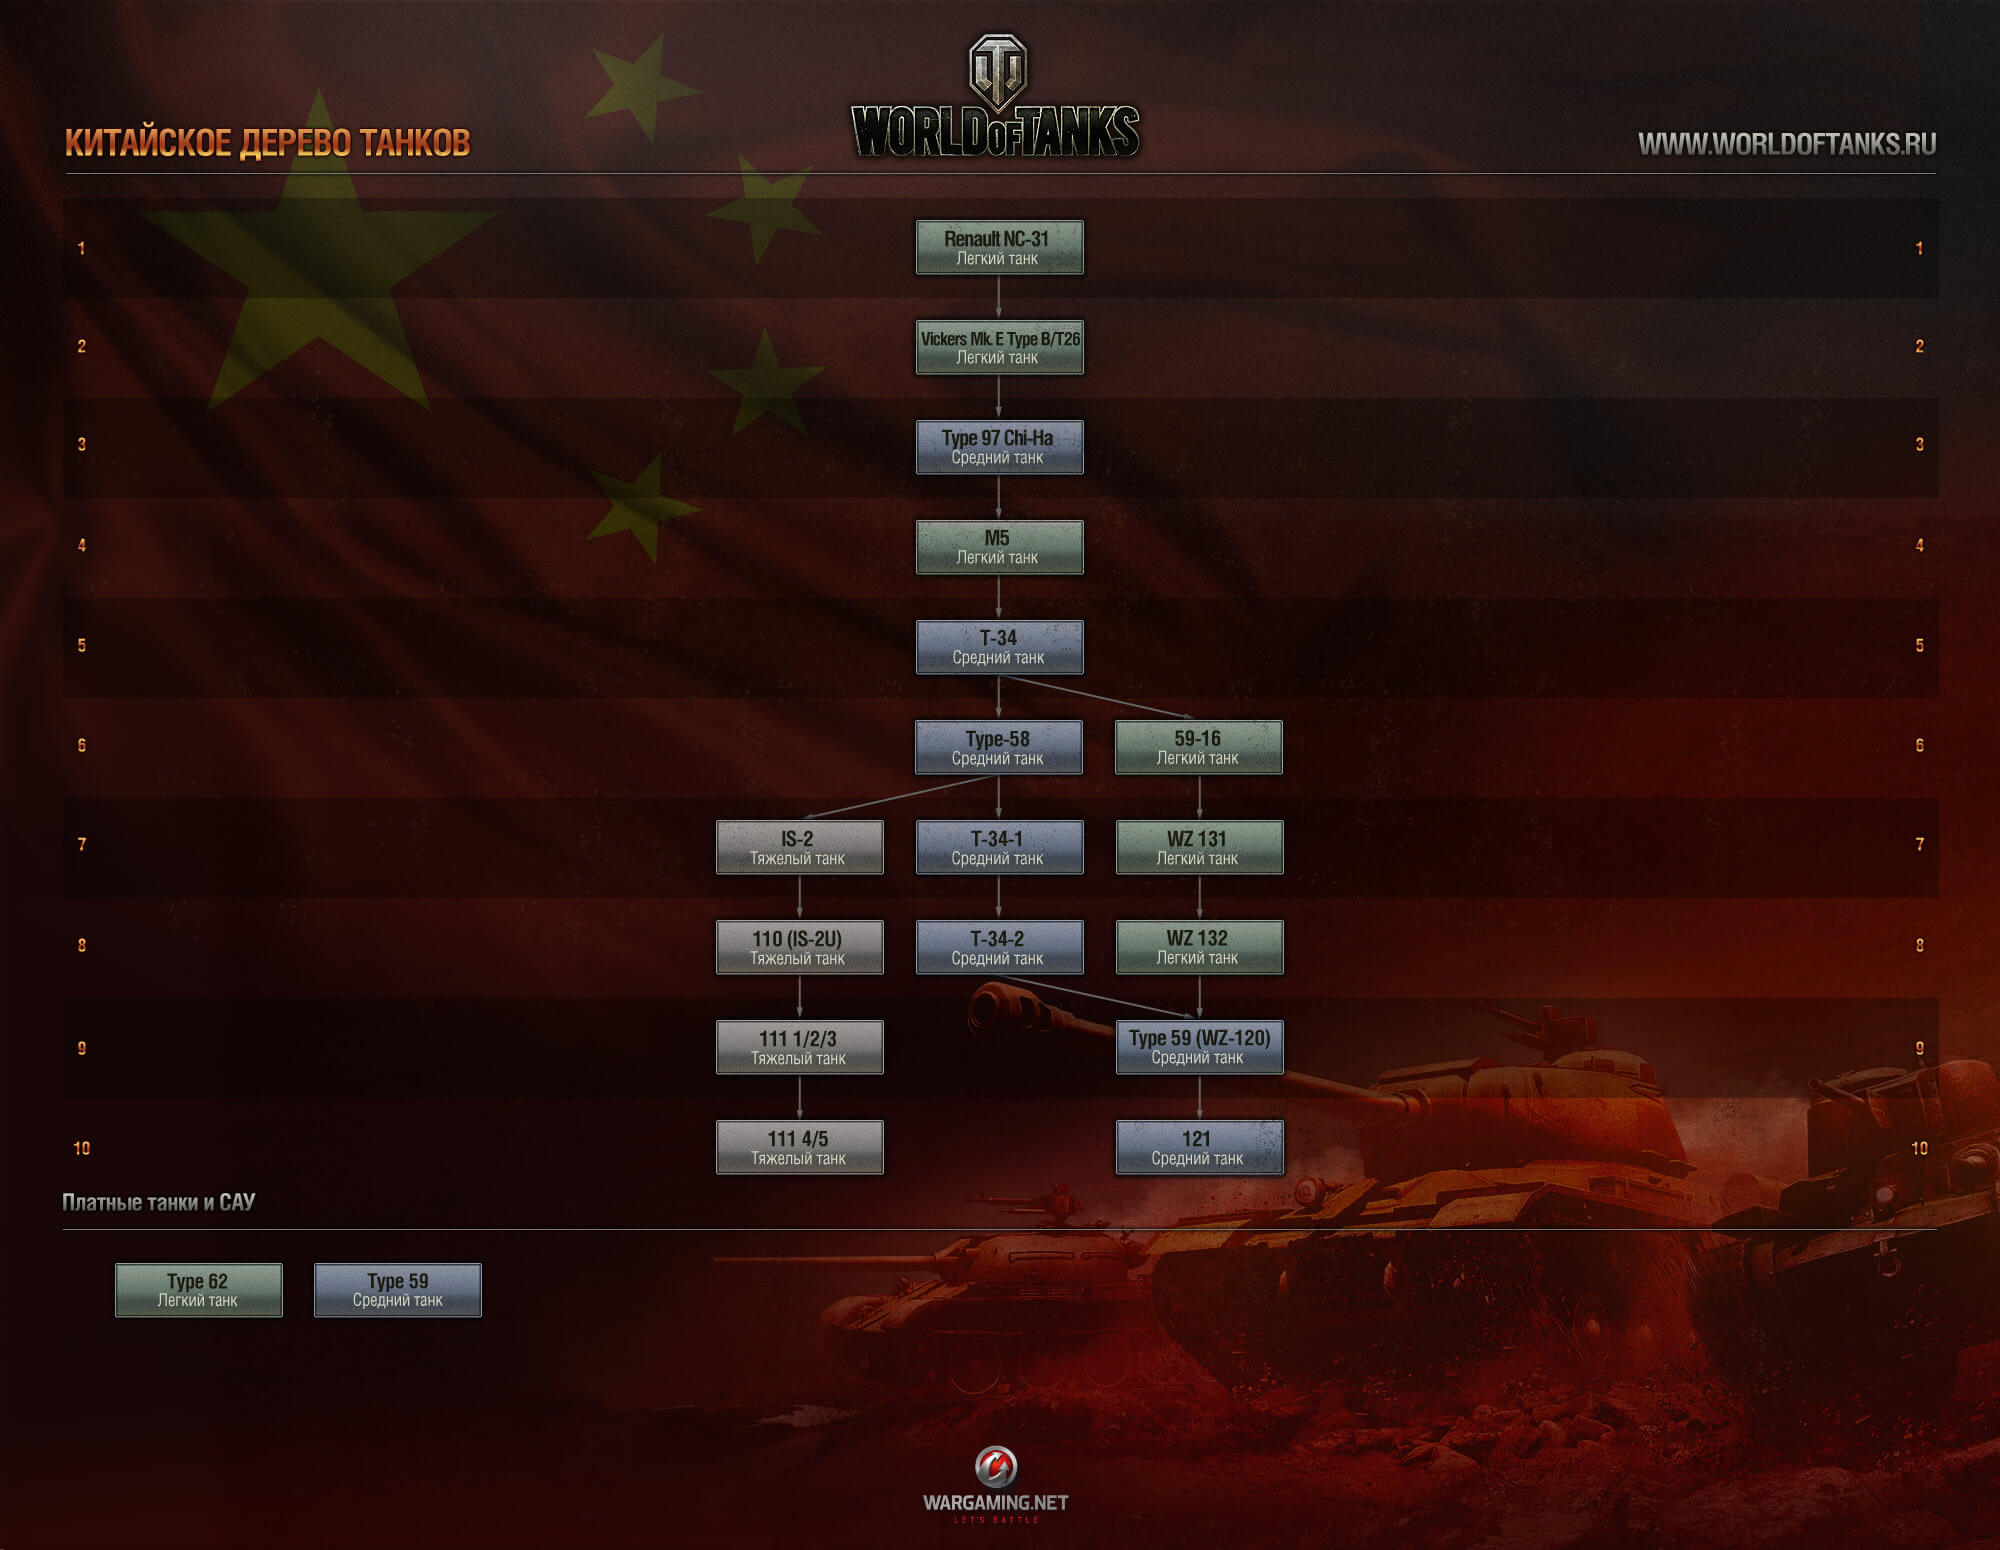 http://worldoftanks.ru/dcont/fb/media/wot_chinese_release_tree_ru_8.jpg